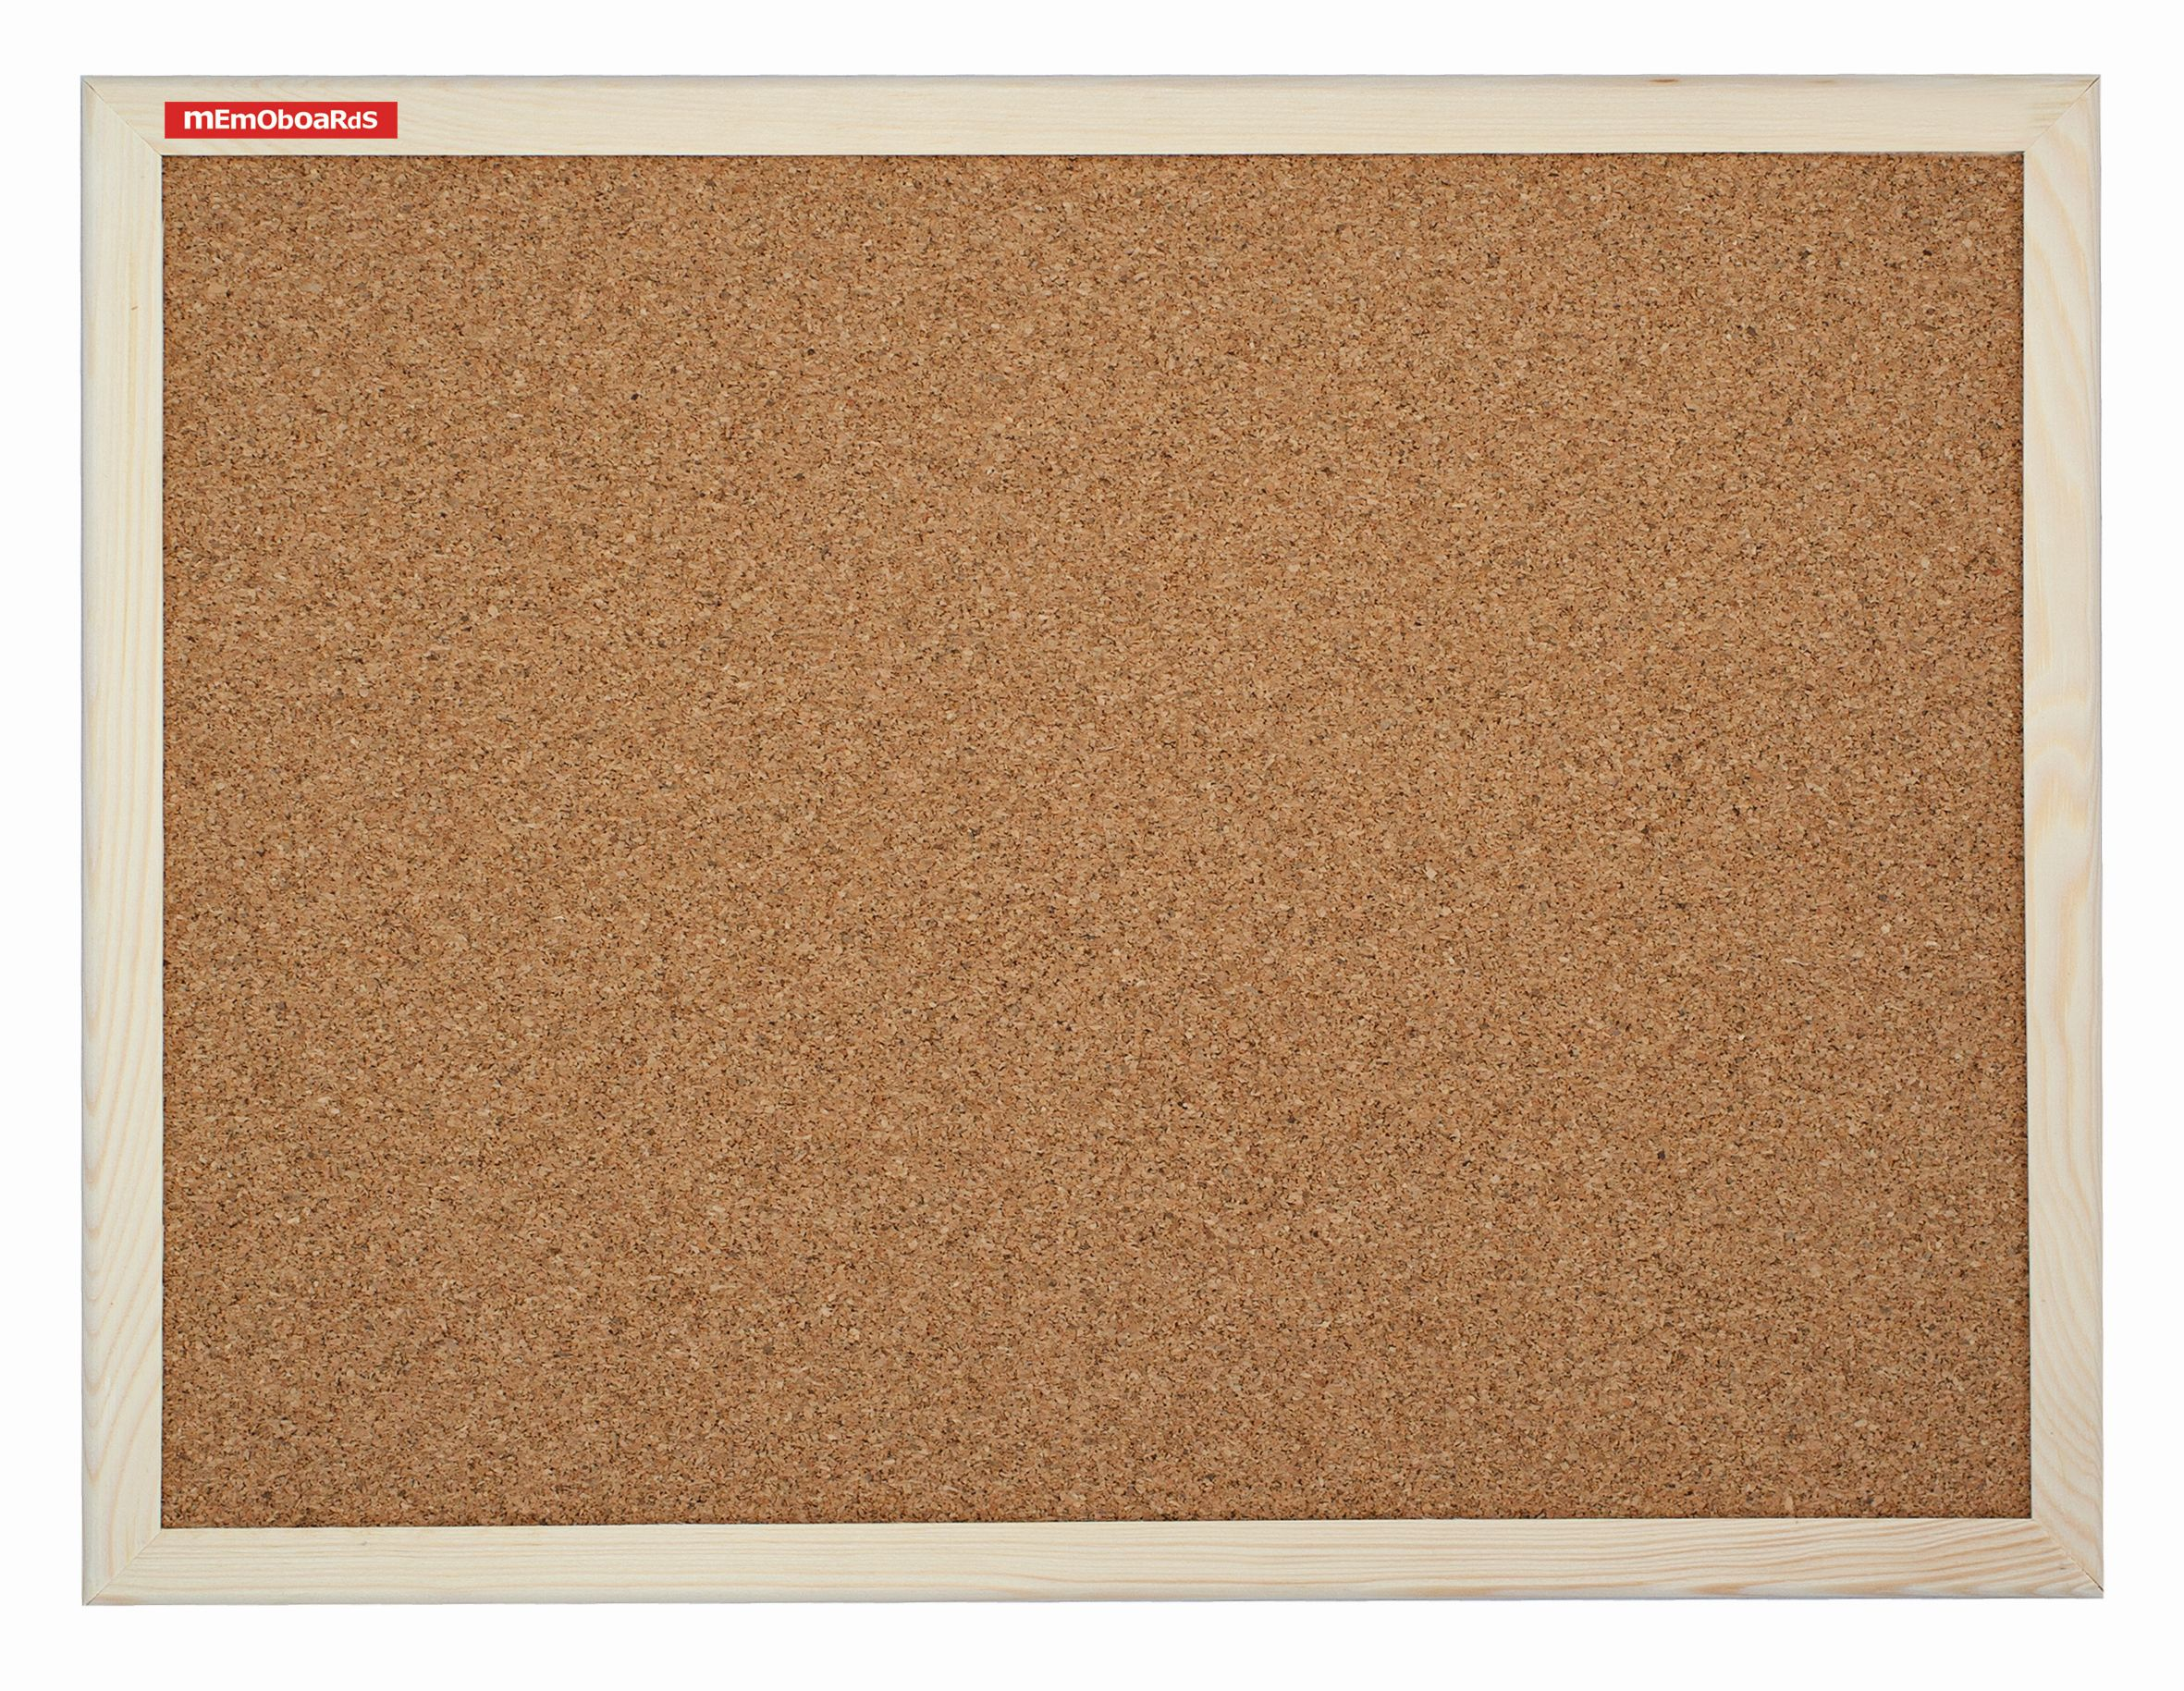 Item Solid WOOD KORKOWA MEMOBOARDS 50X40cm 40X50